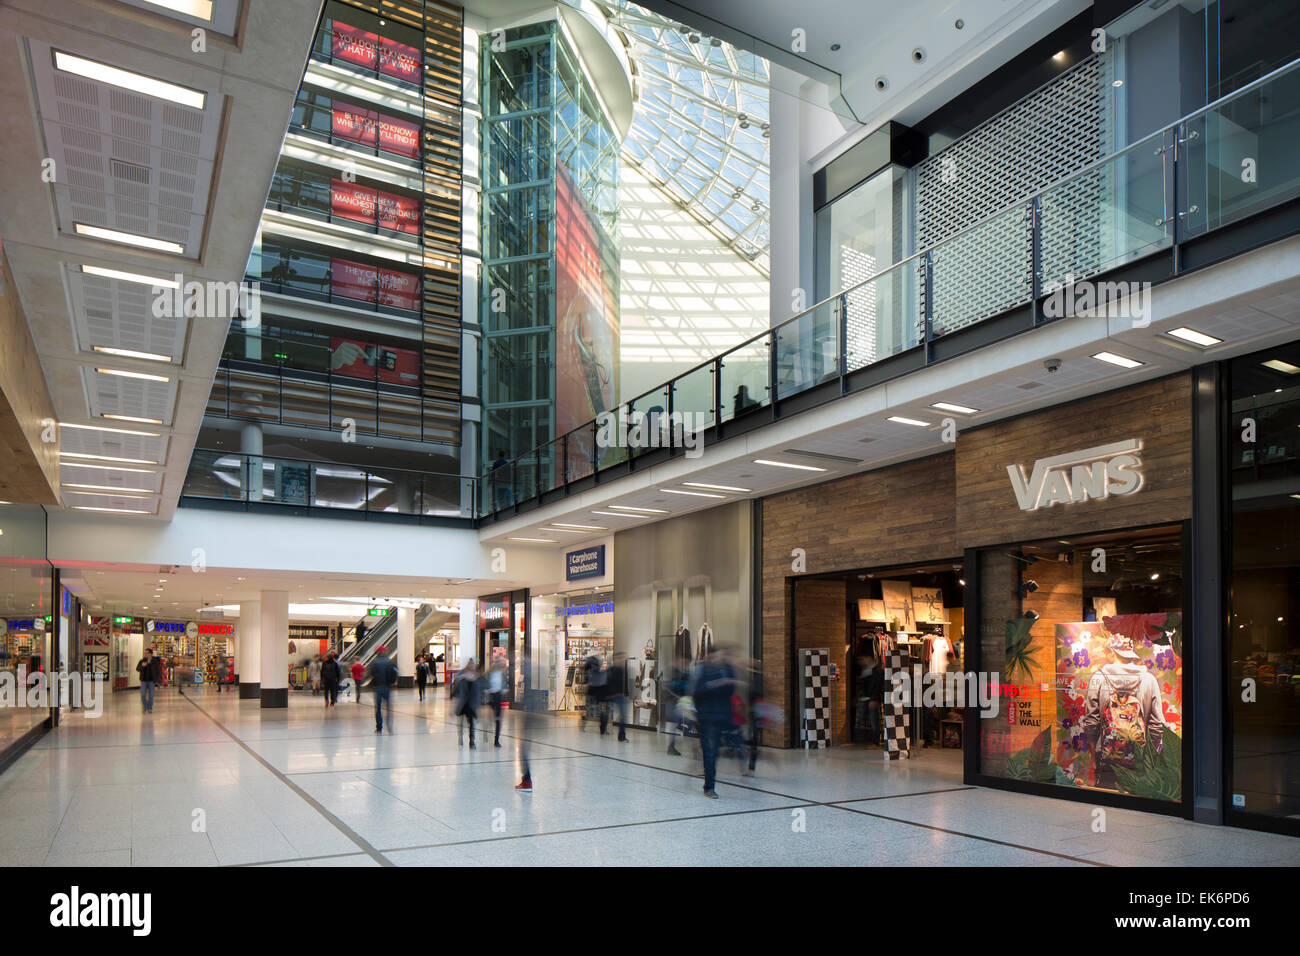 manchester arndale vans store interior - Stock Image